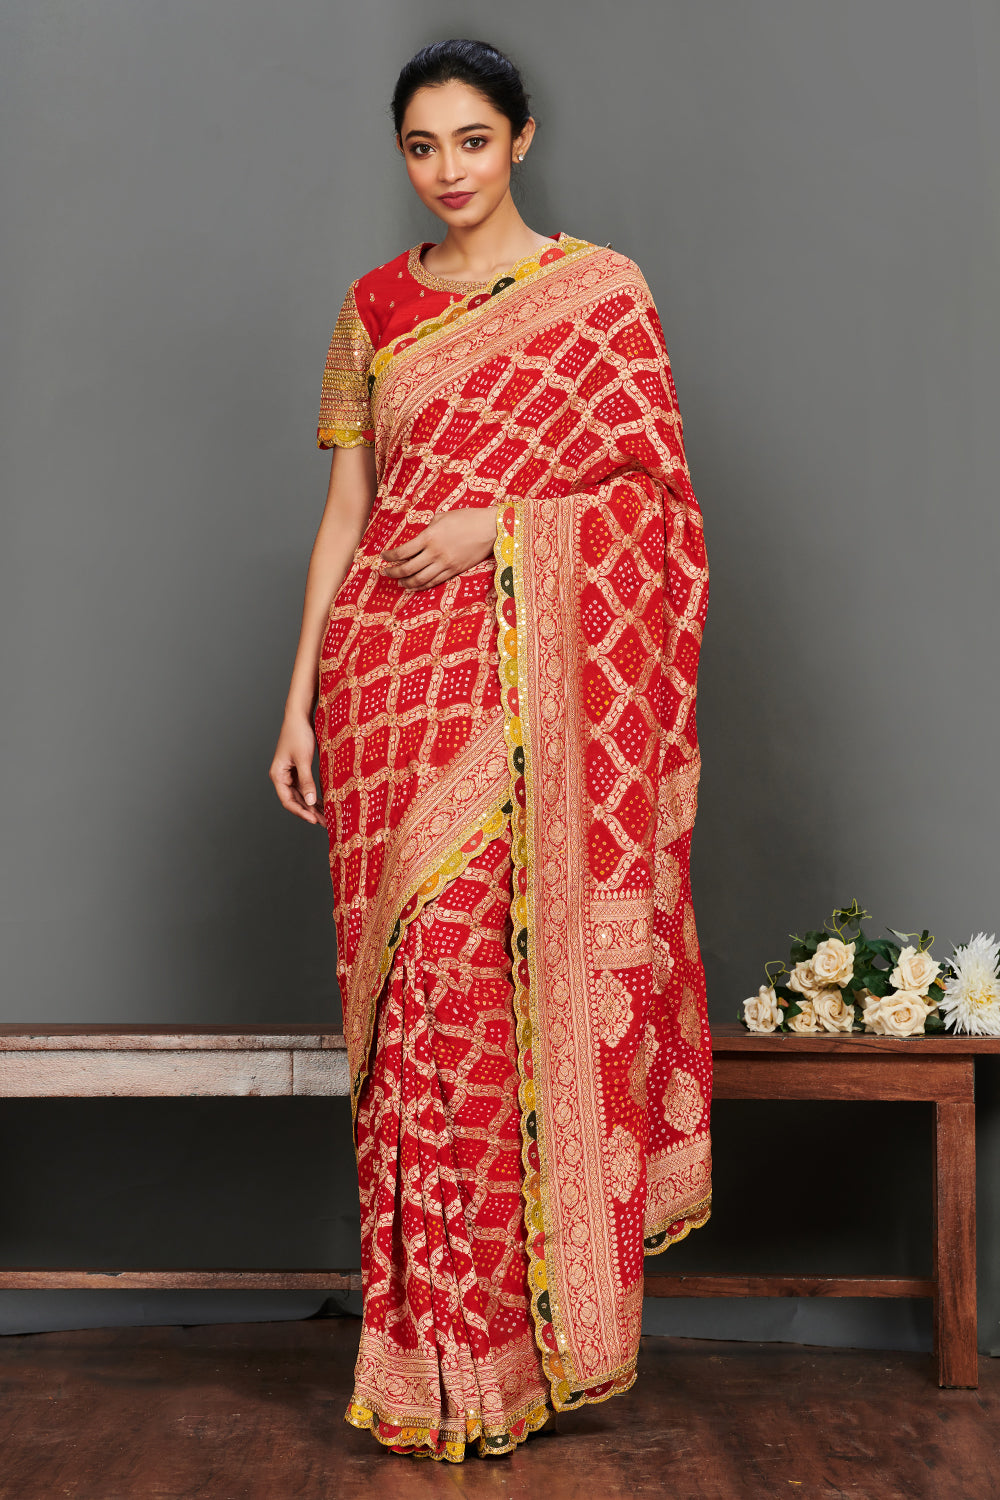 Shop gorgeous red Bandhej saree online in USA with embroidered saree blouse. Make a fashion statement on festive occasions and weddings with designer suits, Indian dresses, Anarkali suits, palazzo suits, designer gowns, sharara suits from Pure Elegance Indian fashion store in USA.-full view